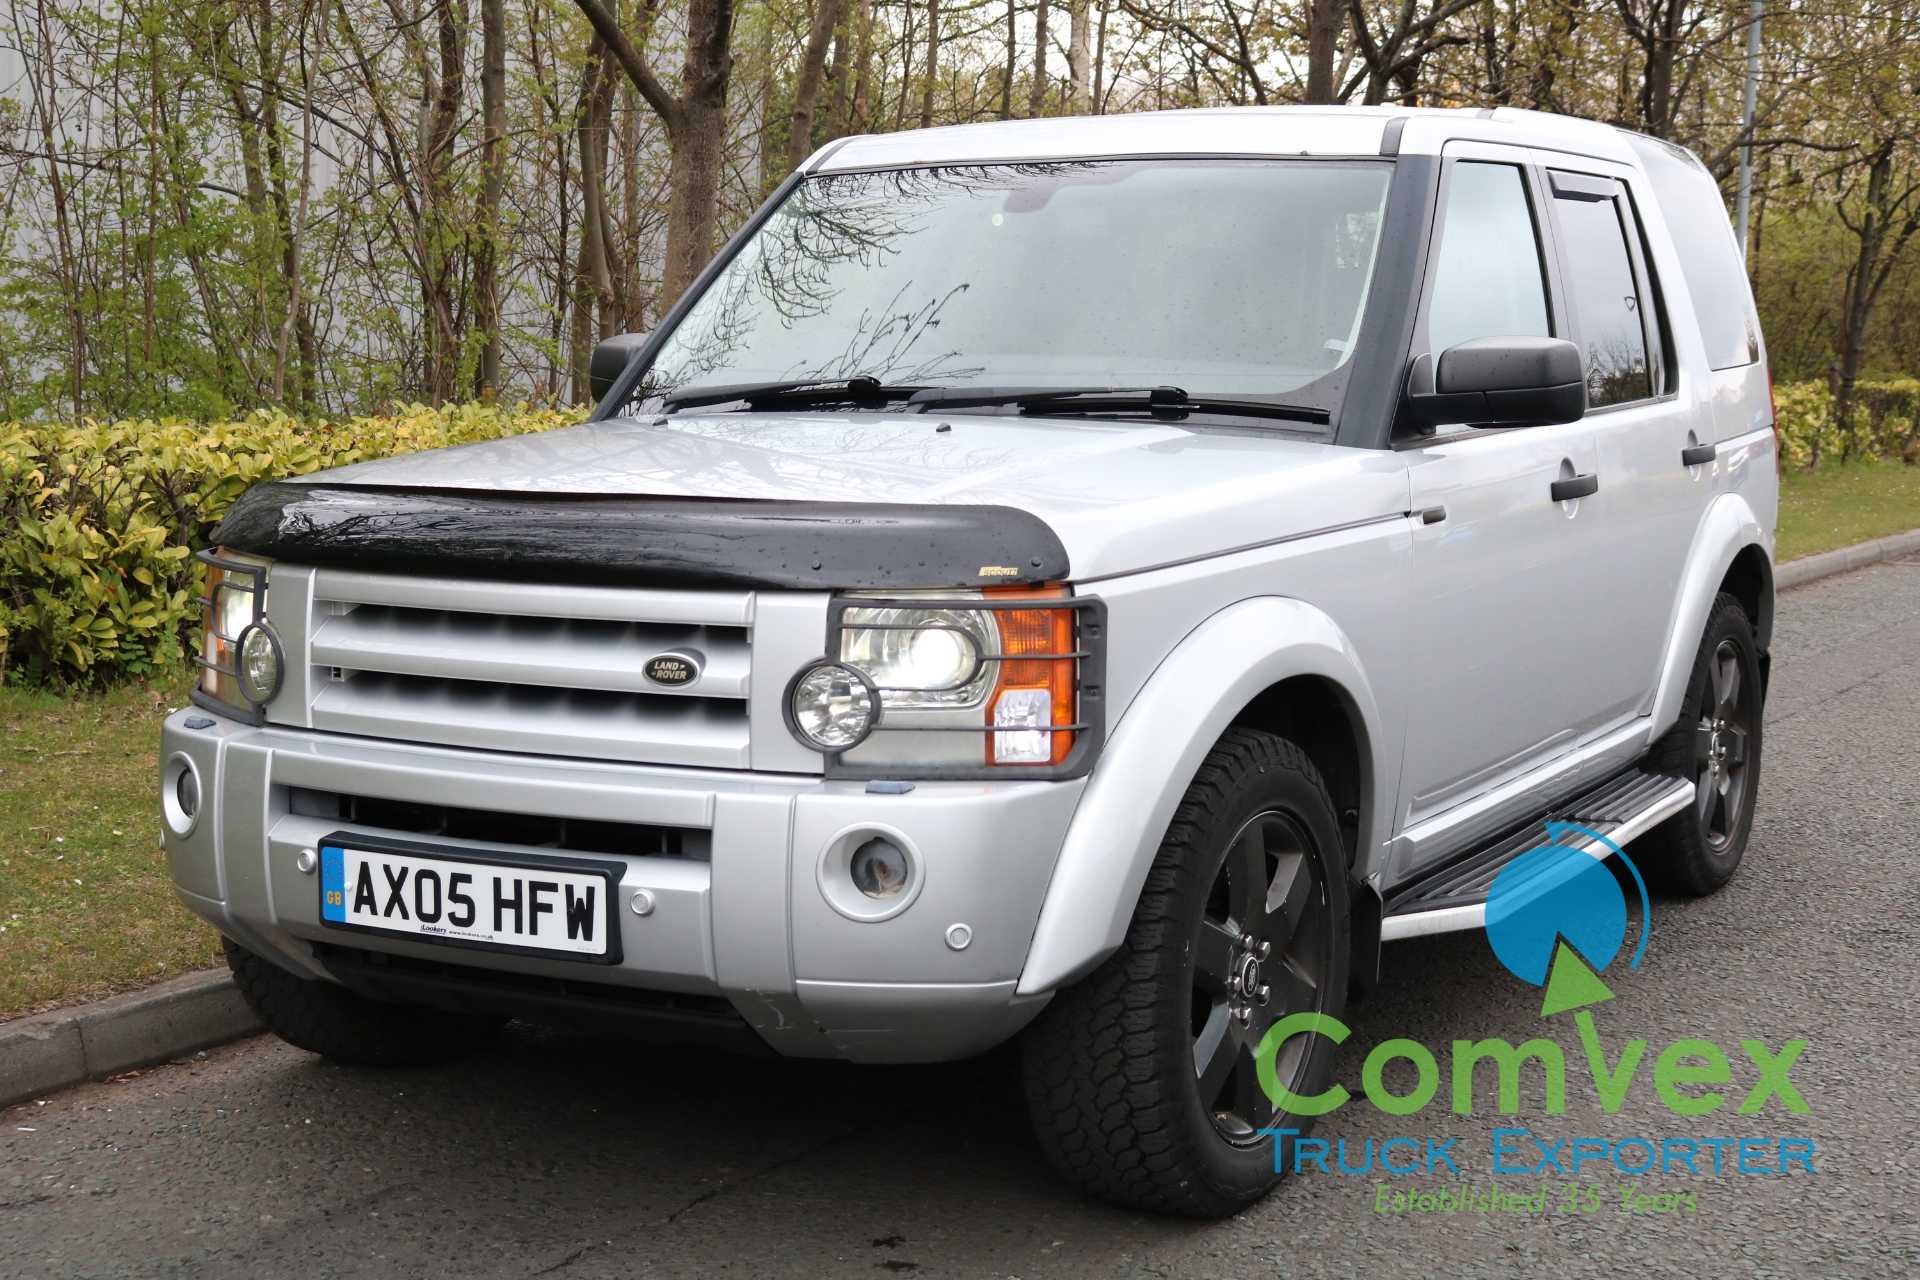 Landrover Discovery 3 TDV6 7st SUV 4×4 (2005)